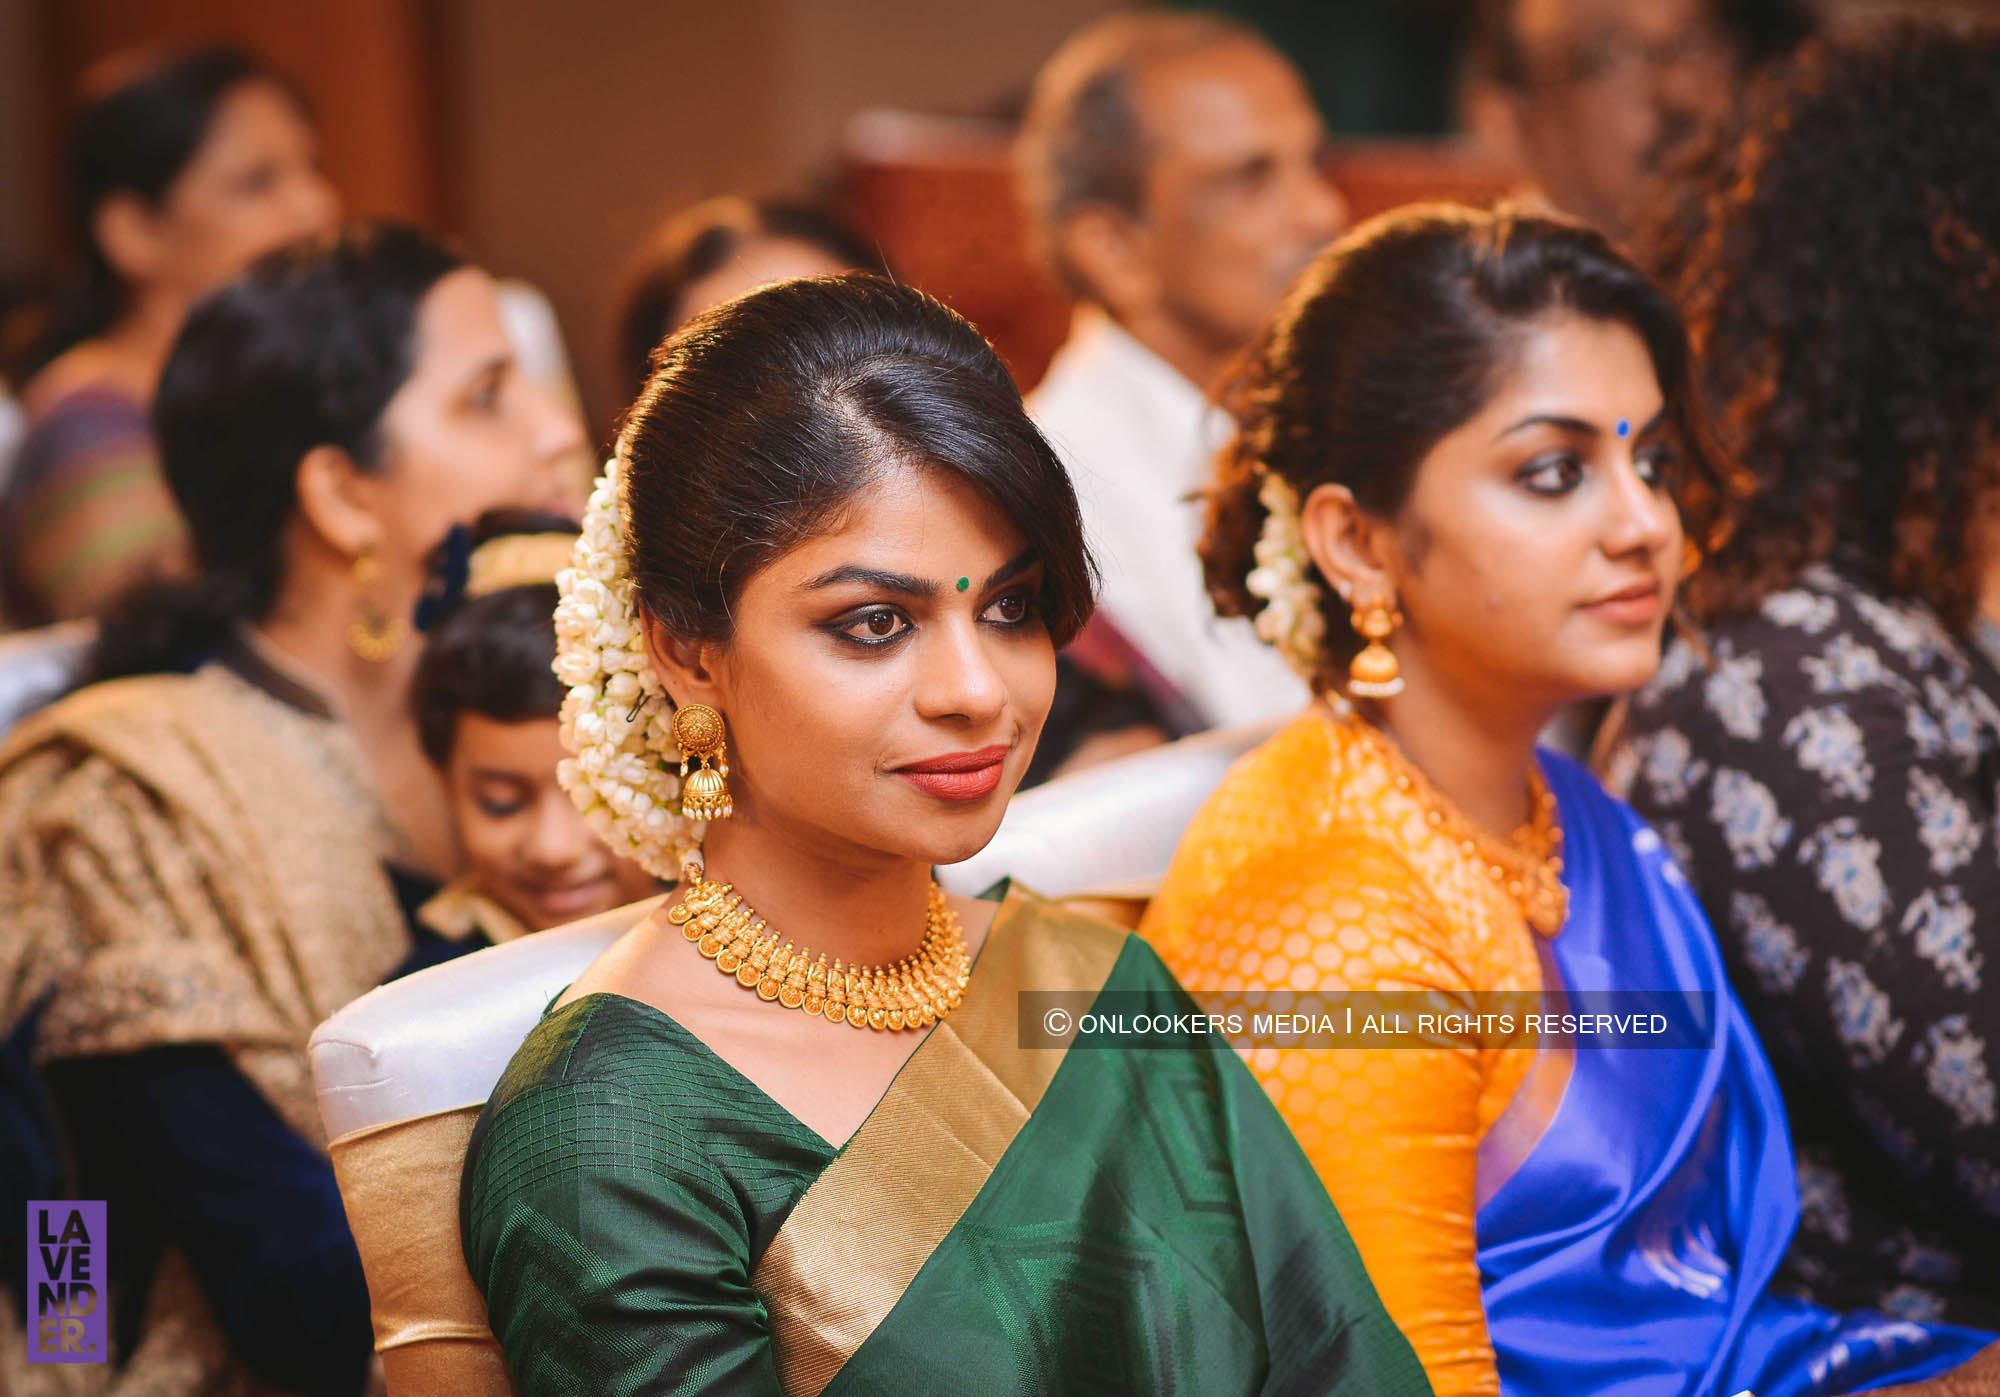 http://onlookersmedia.in/wp-content/uploads/2018/05/sreejith-vijay-wedding-stills-images-69.jpg